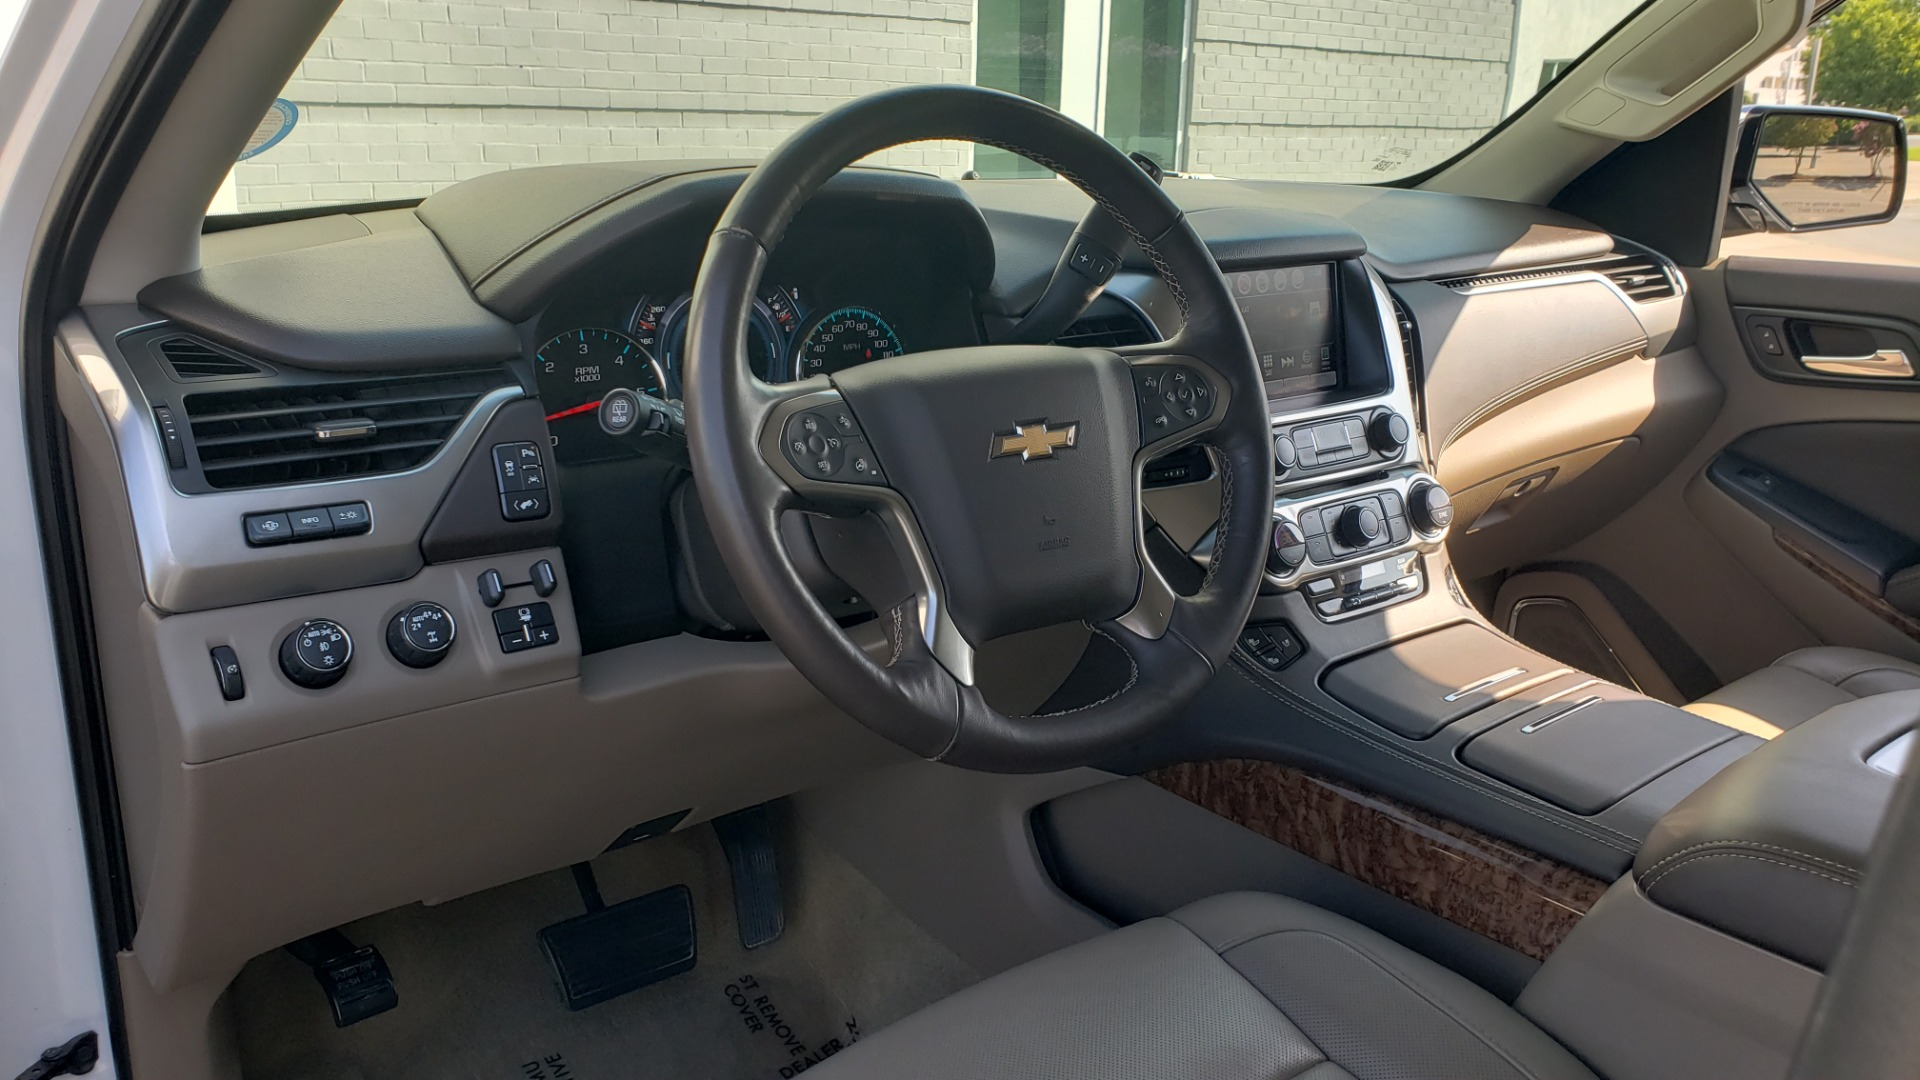 Used 2018 Chevrolet TAHOE PREMIER 4X4 / NAV / BOSE / SUNROOF / ENT SYS / 3-ROW / REARVIEW for sale $55,995 at Formula Imports in Charlotte NC 28227 45